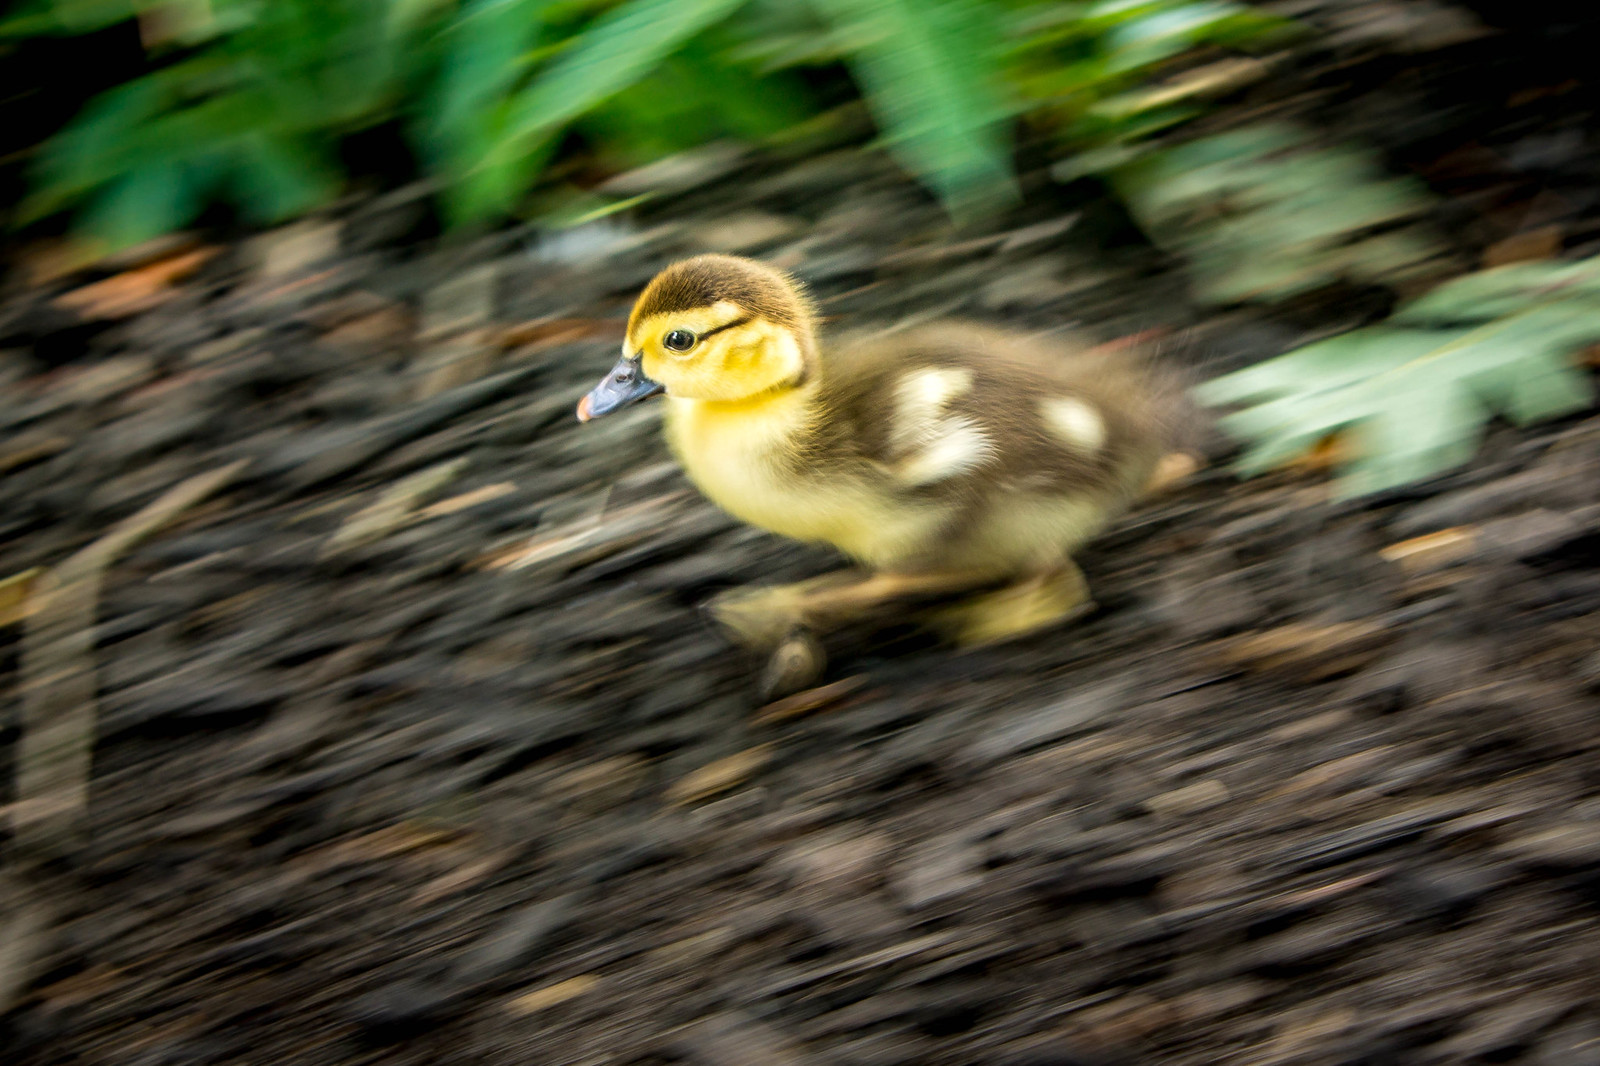 Speedy Duck!